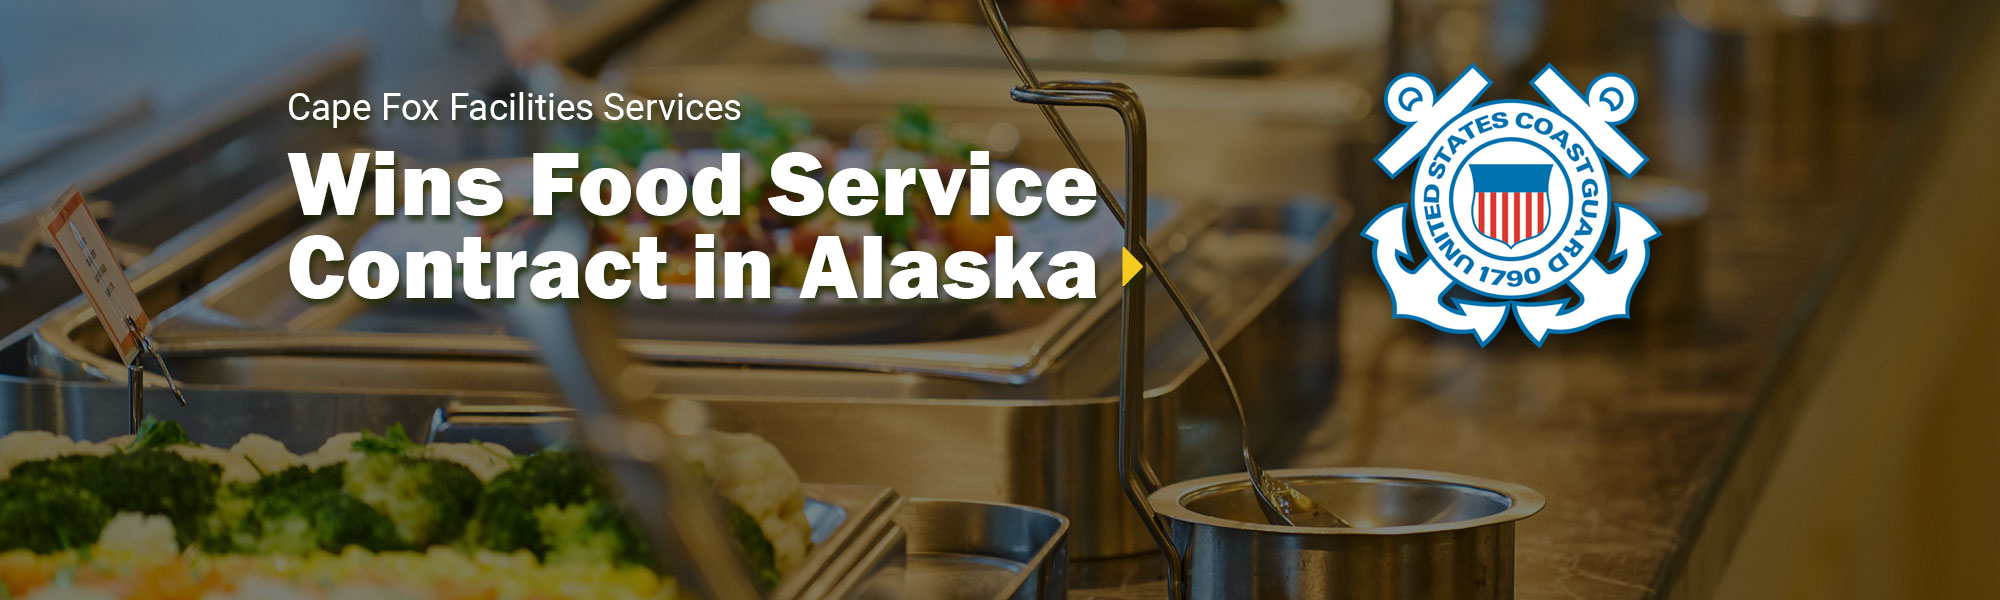 CFFS Wins Food Service Contract in Alaska